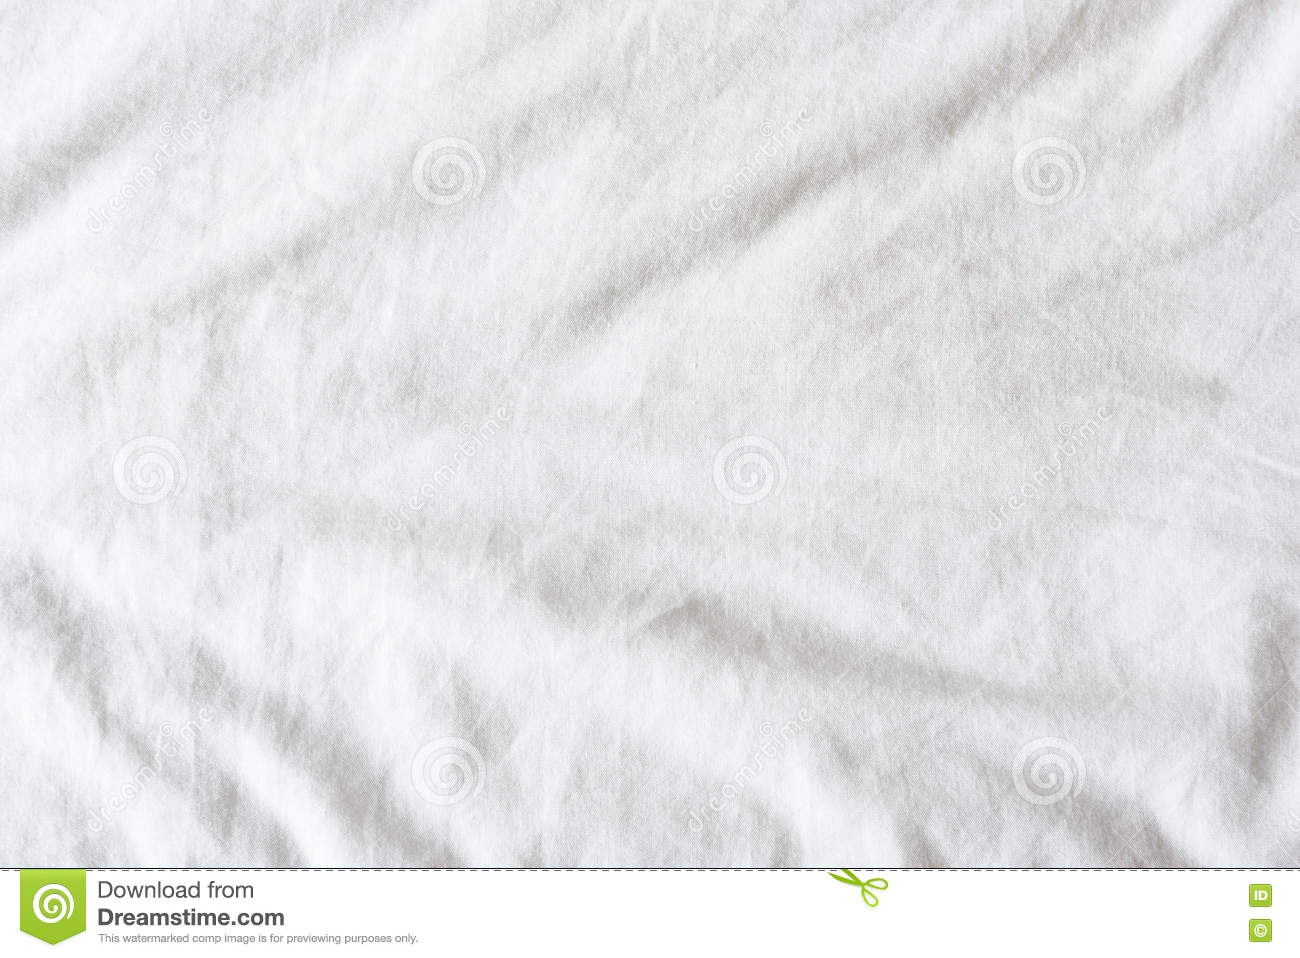 White bed top view - Top View Of Wrinkles On An Untidy White Bed Sheet In A Bedroom